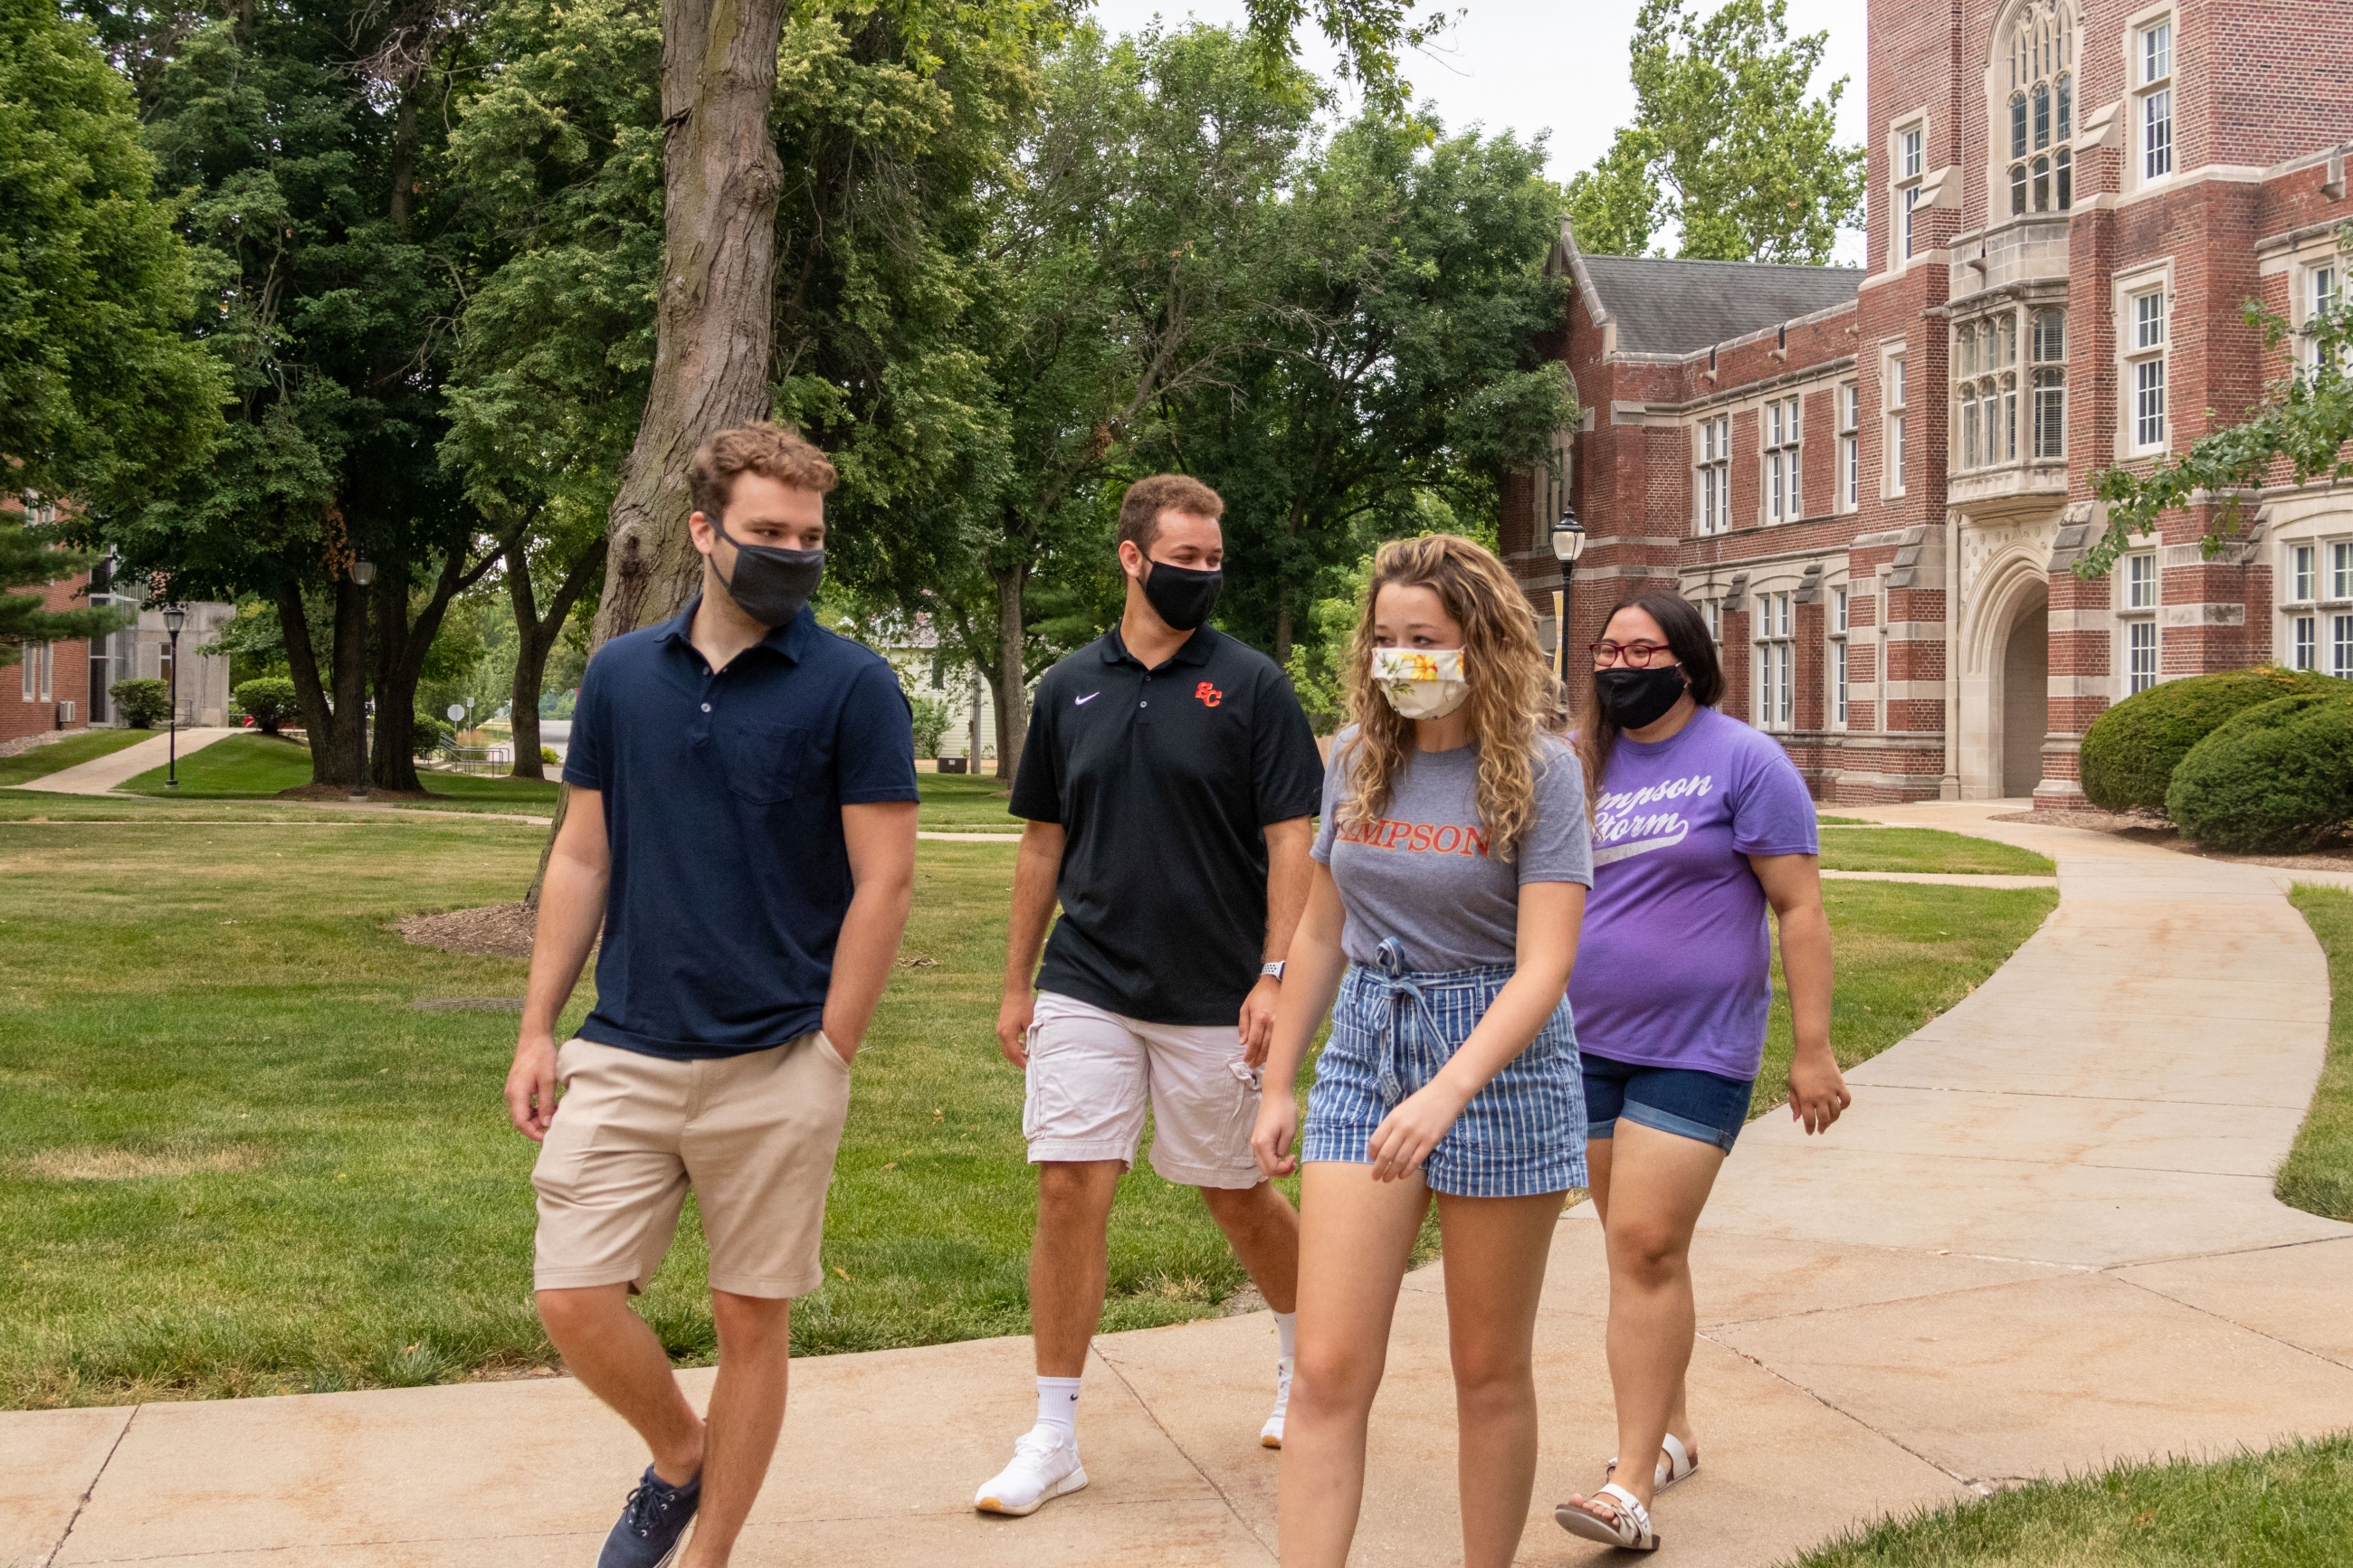 campus tour with masks